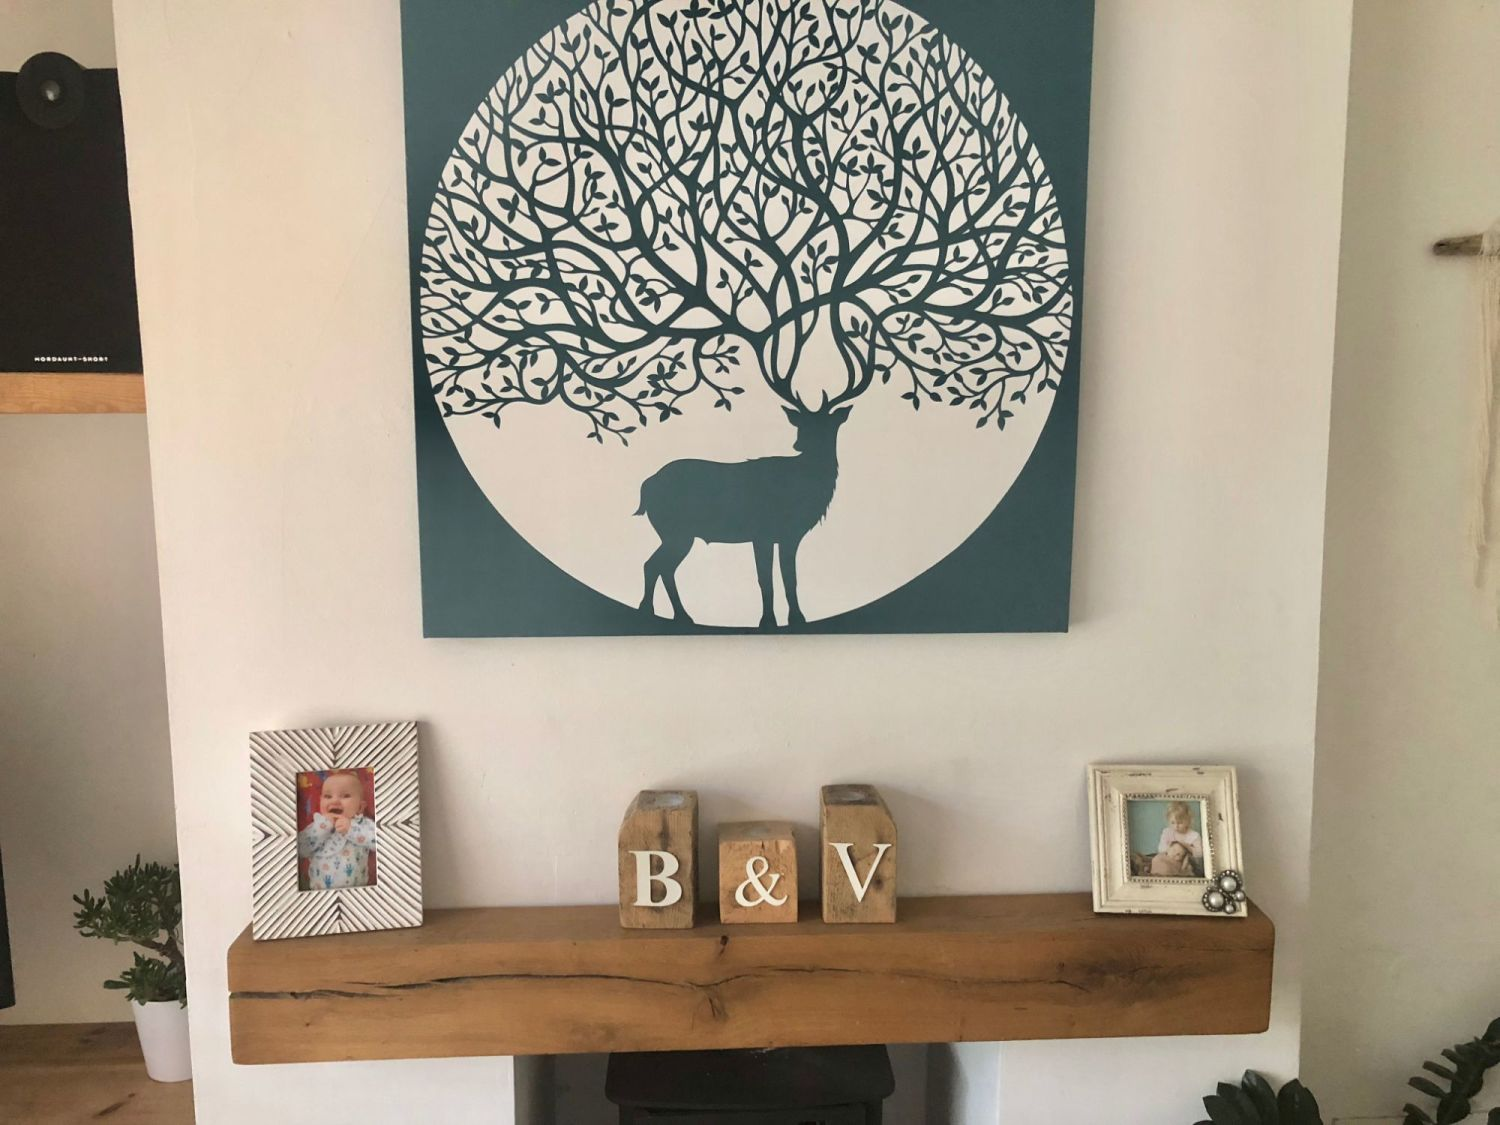 free stock image photo fireplace mantelpiece oak beam canvas artwork stag